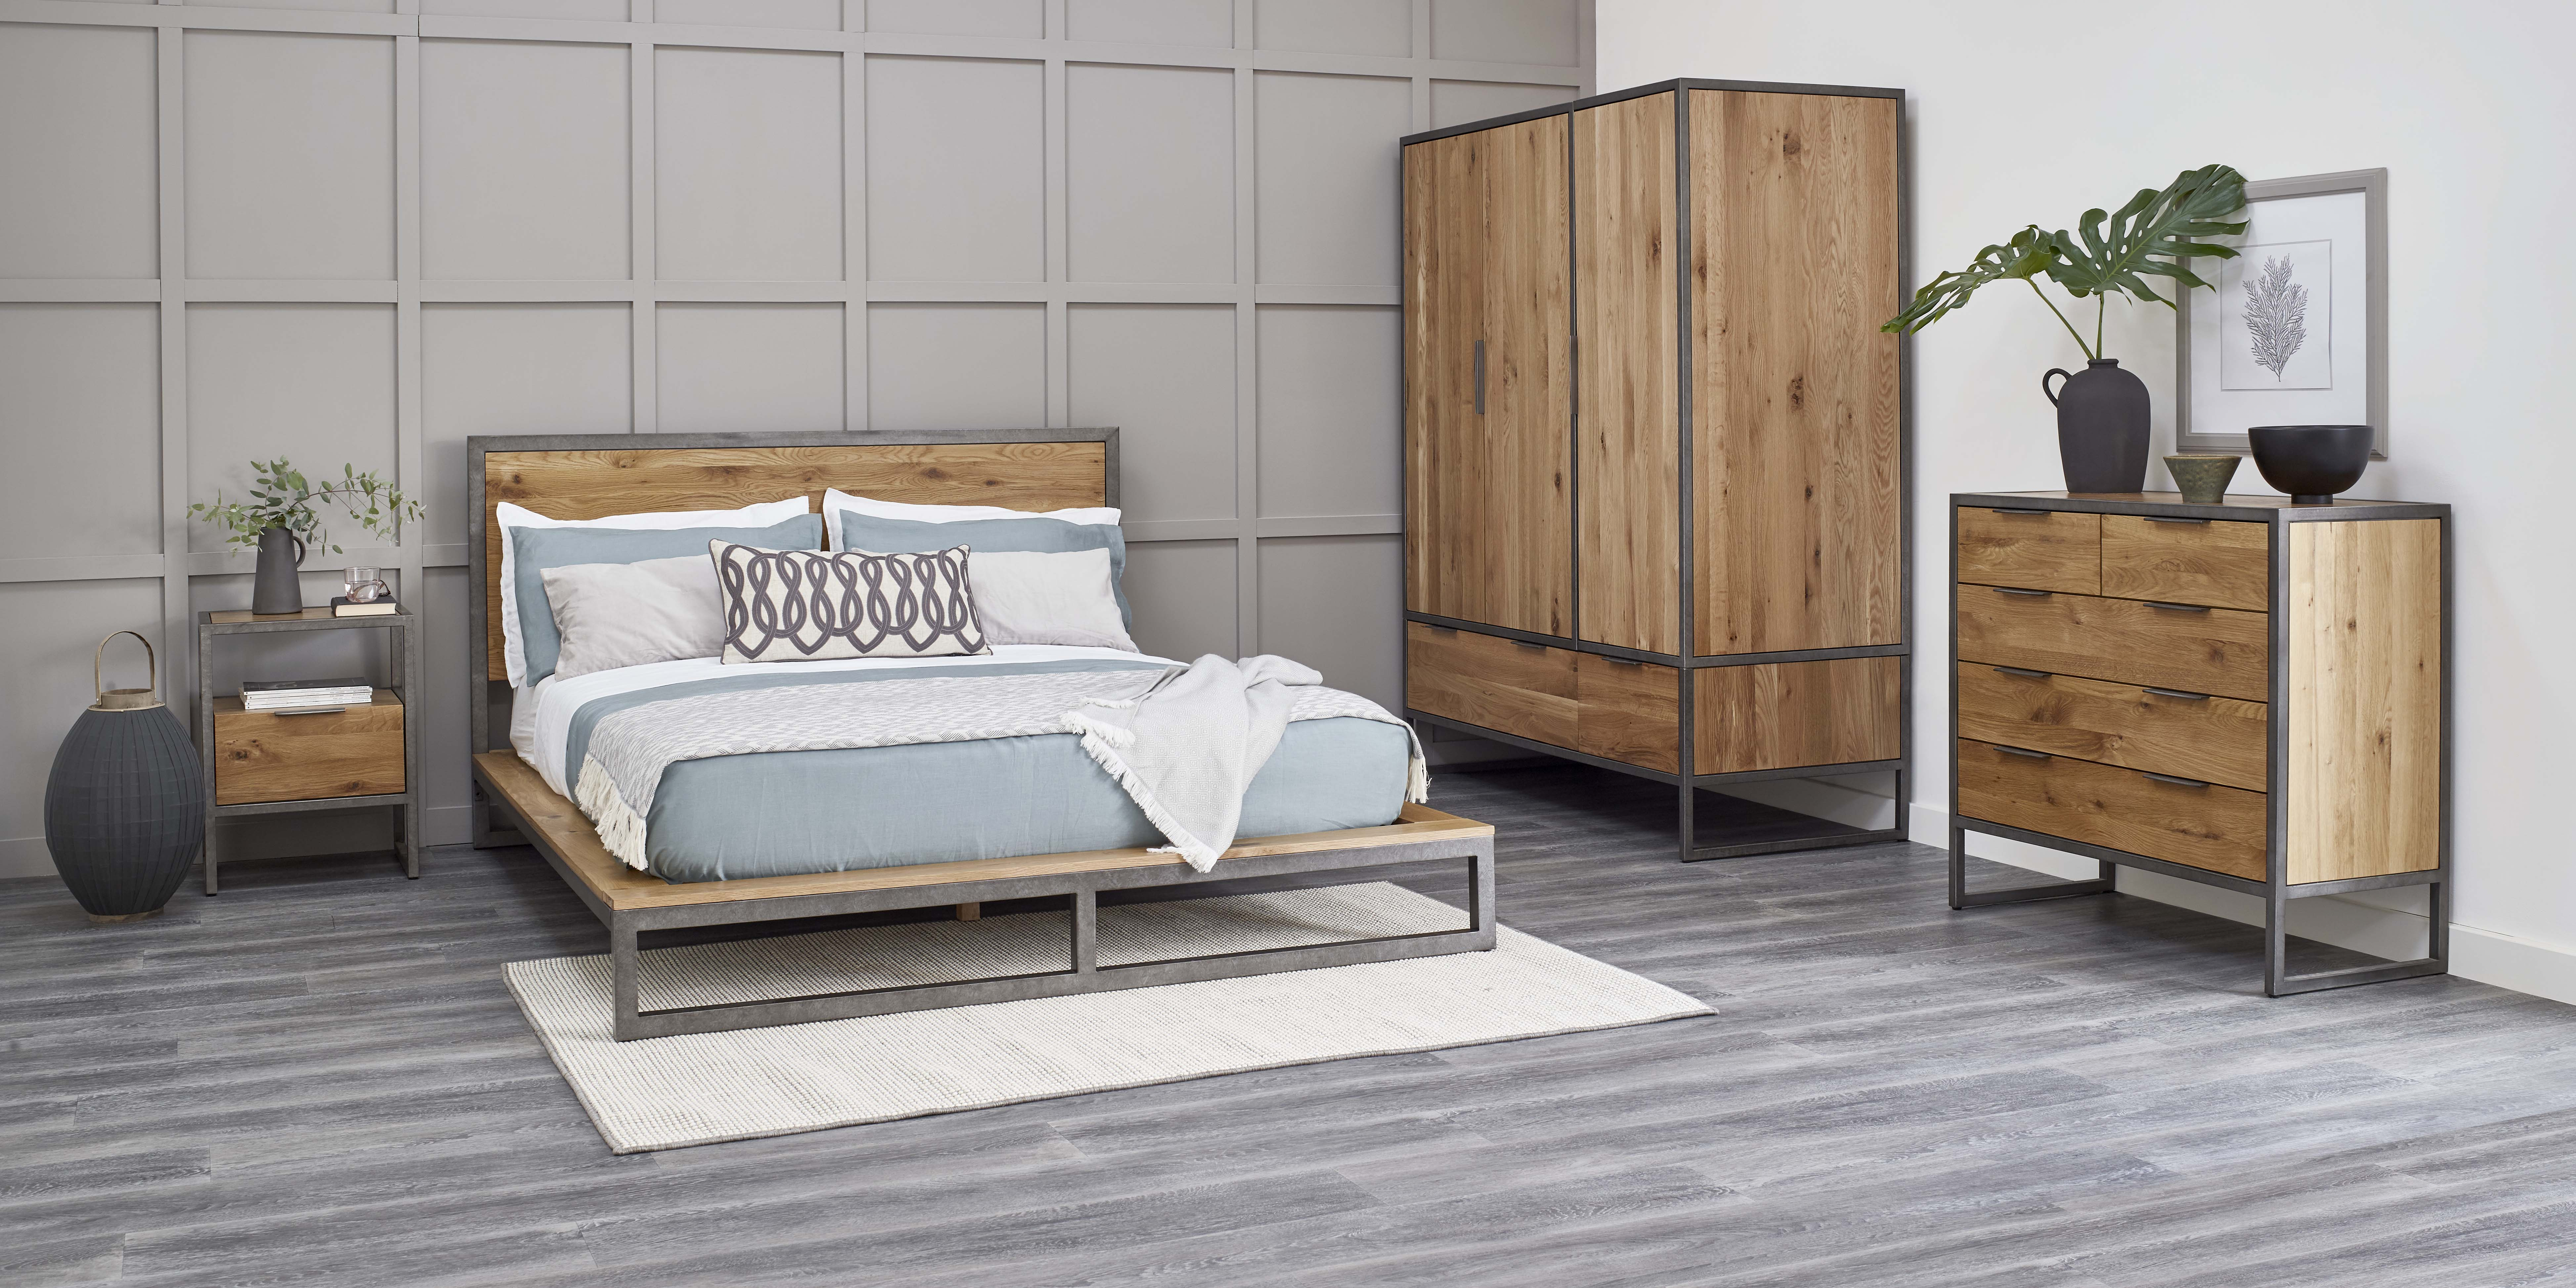 Bedroom Storage Ideas: How To Organise your Room